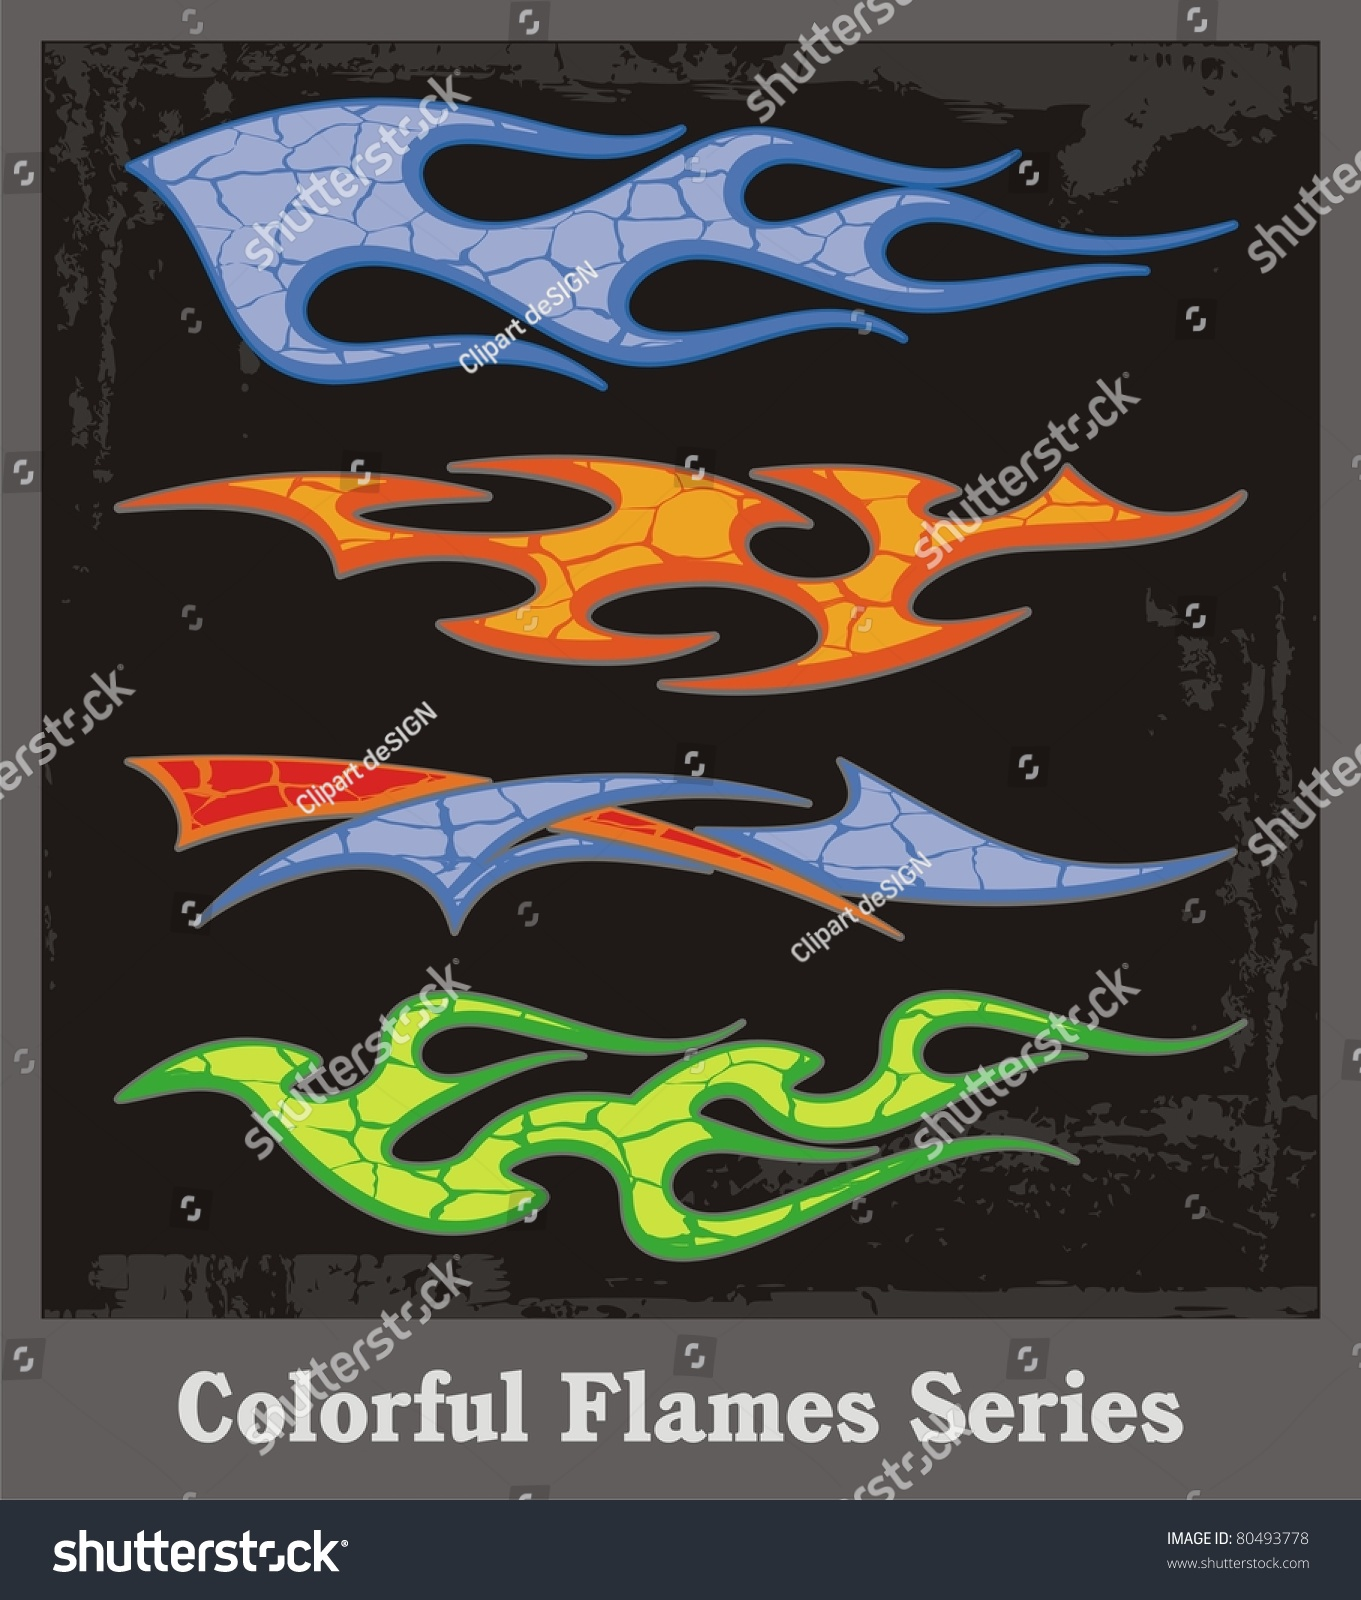 Colorful Flames And Vehicle Graphics With Grunge Patterns Great - Best automobile graphics and patterns